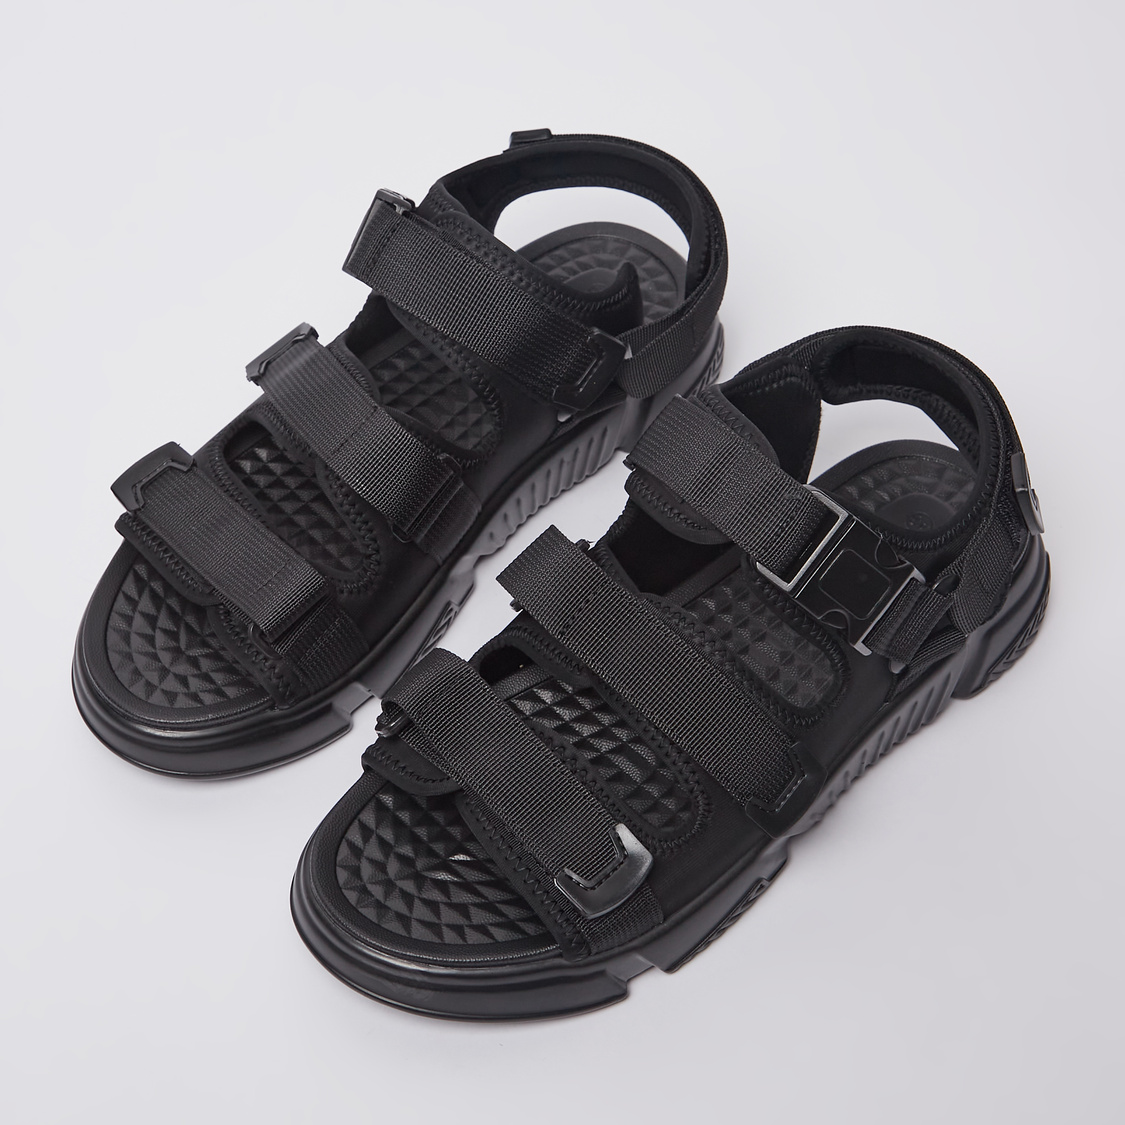 Textured Sport Sandals with Hook and Loop Closure